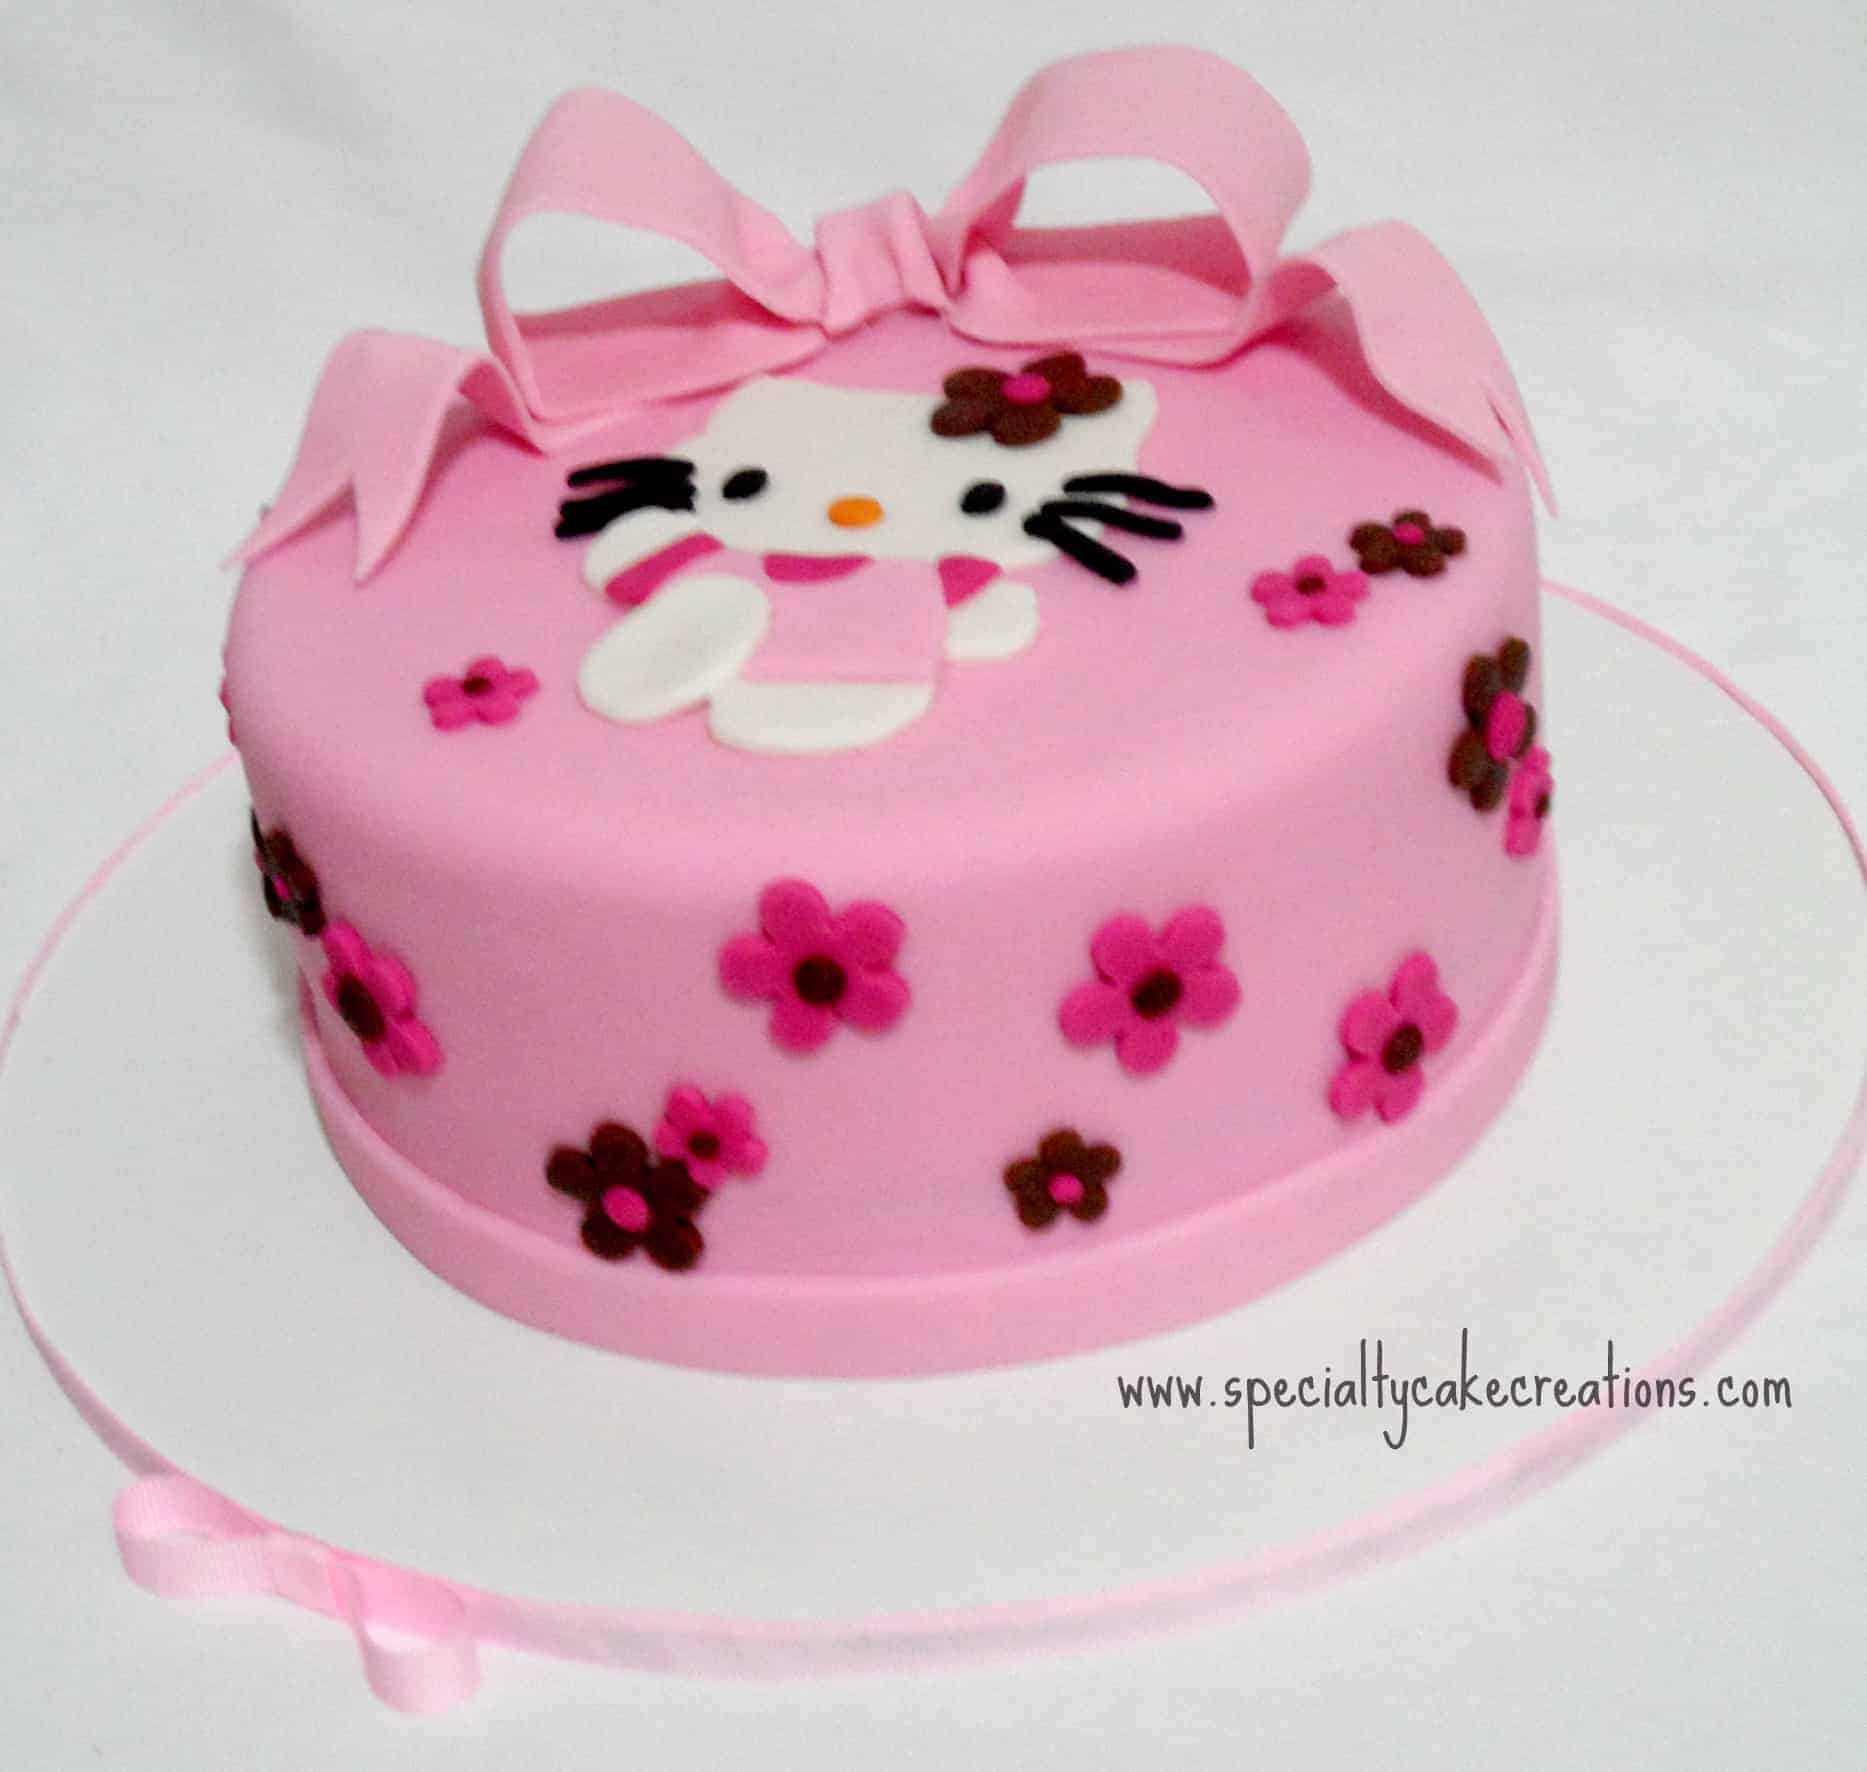 Images Of A Hello Kitty Cake : Specialty Hello Kitty Cake